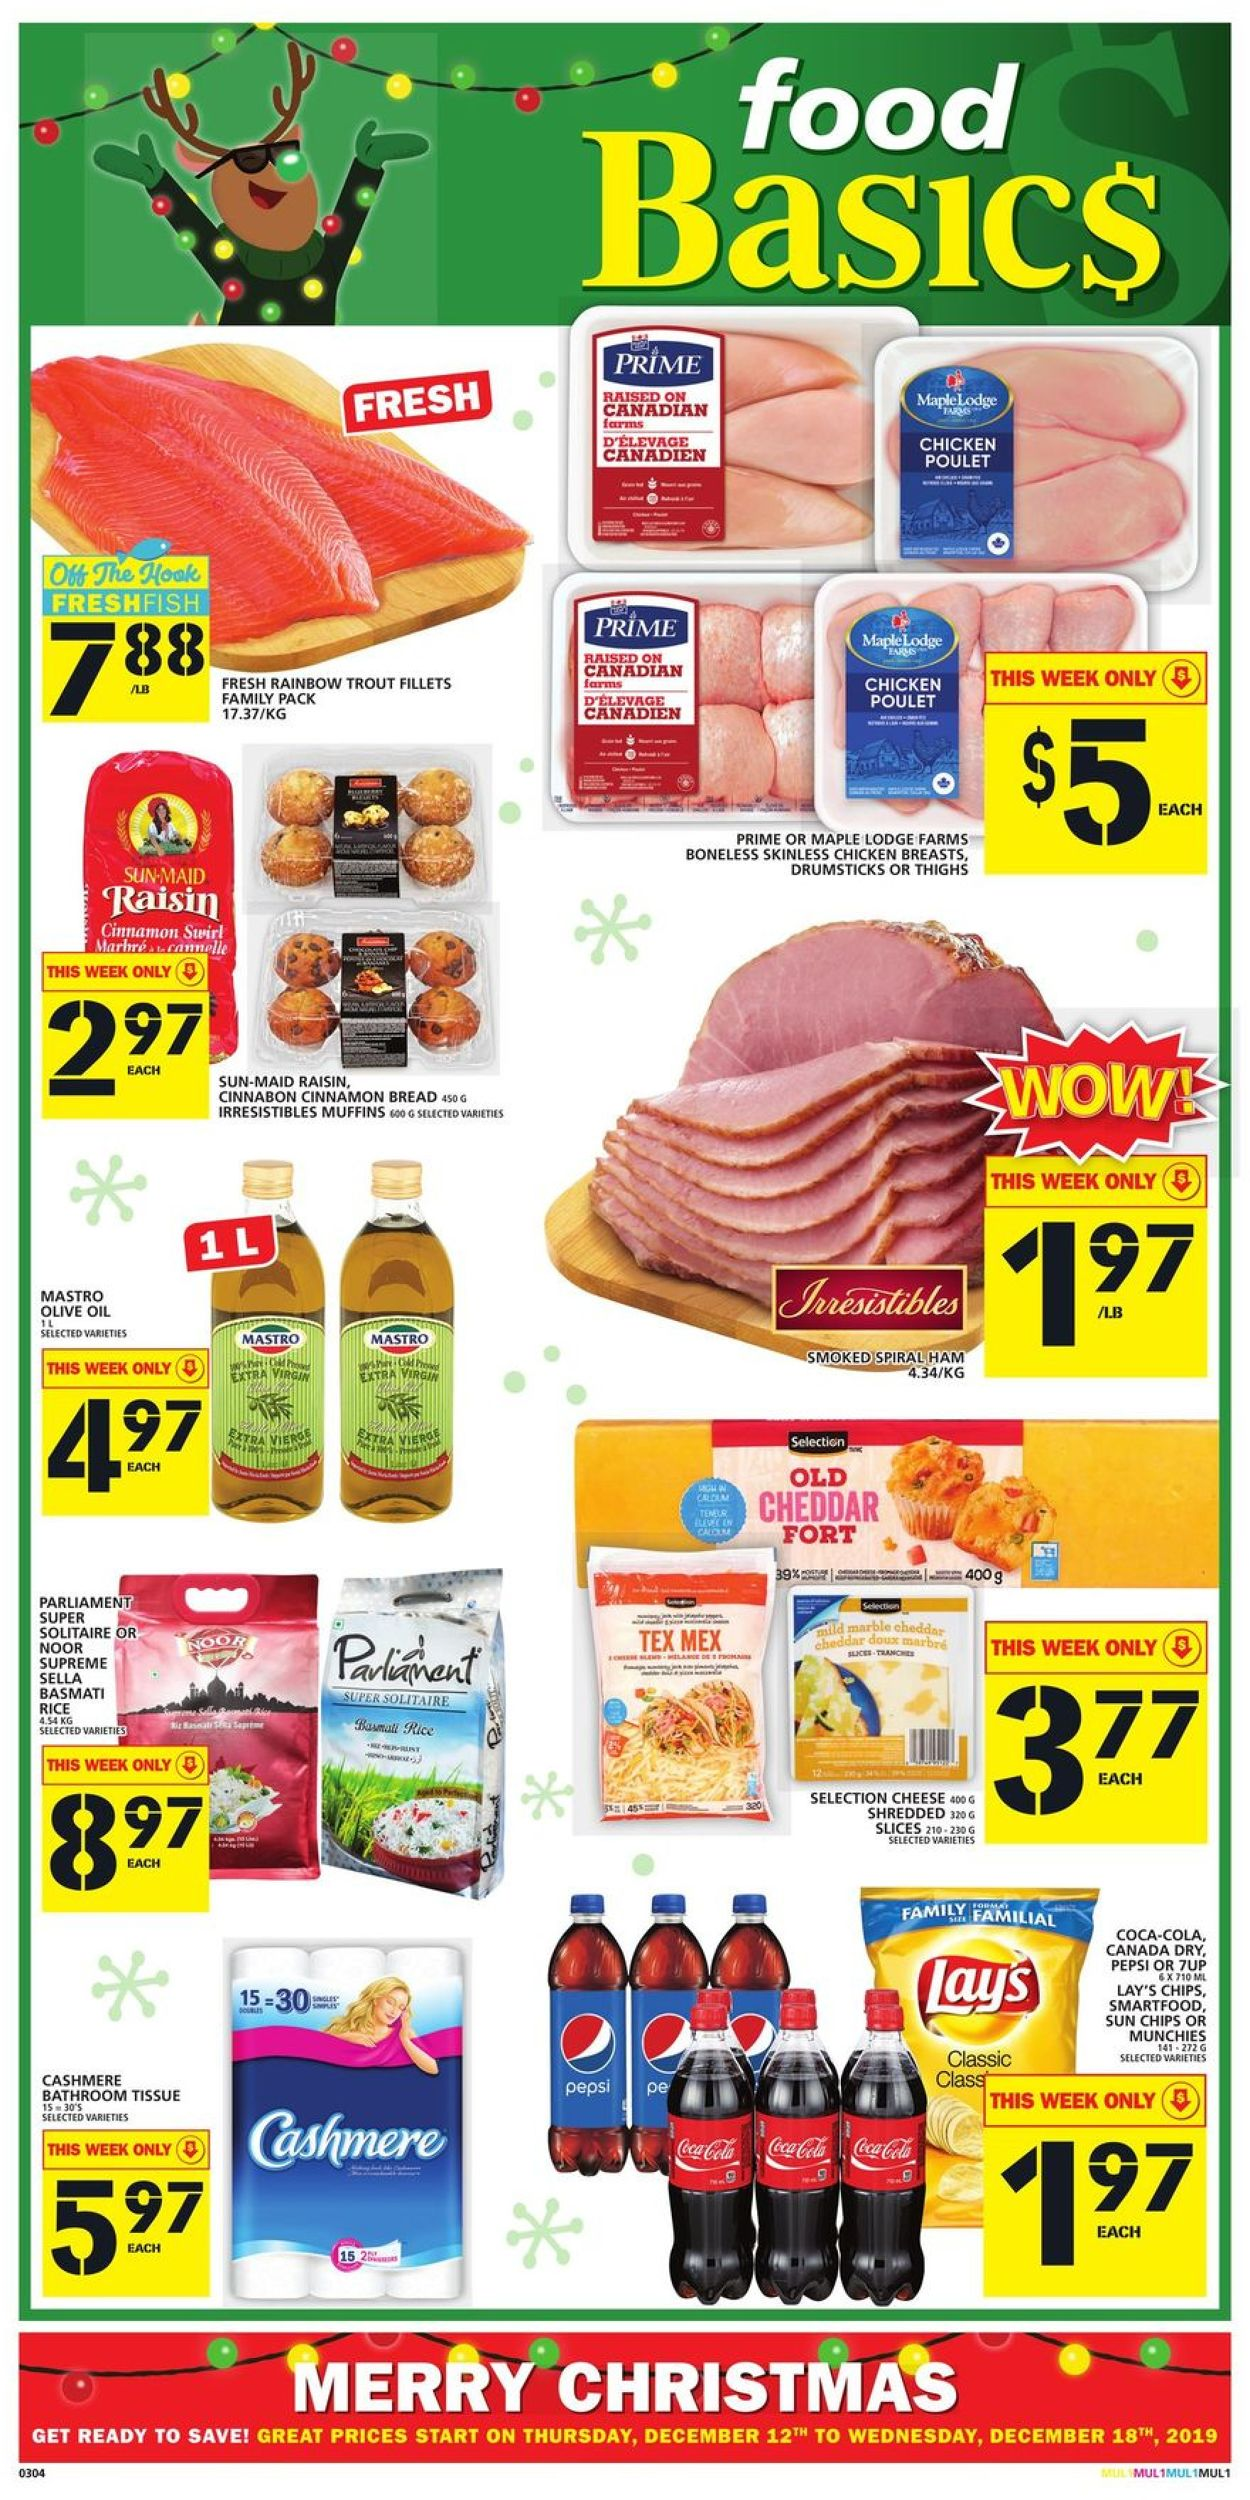 Food Basics - CHRISTMAS 2019 FLYER